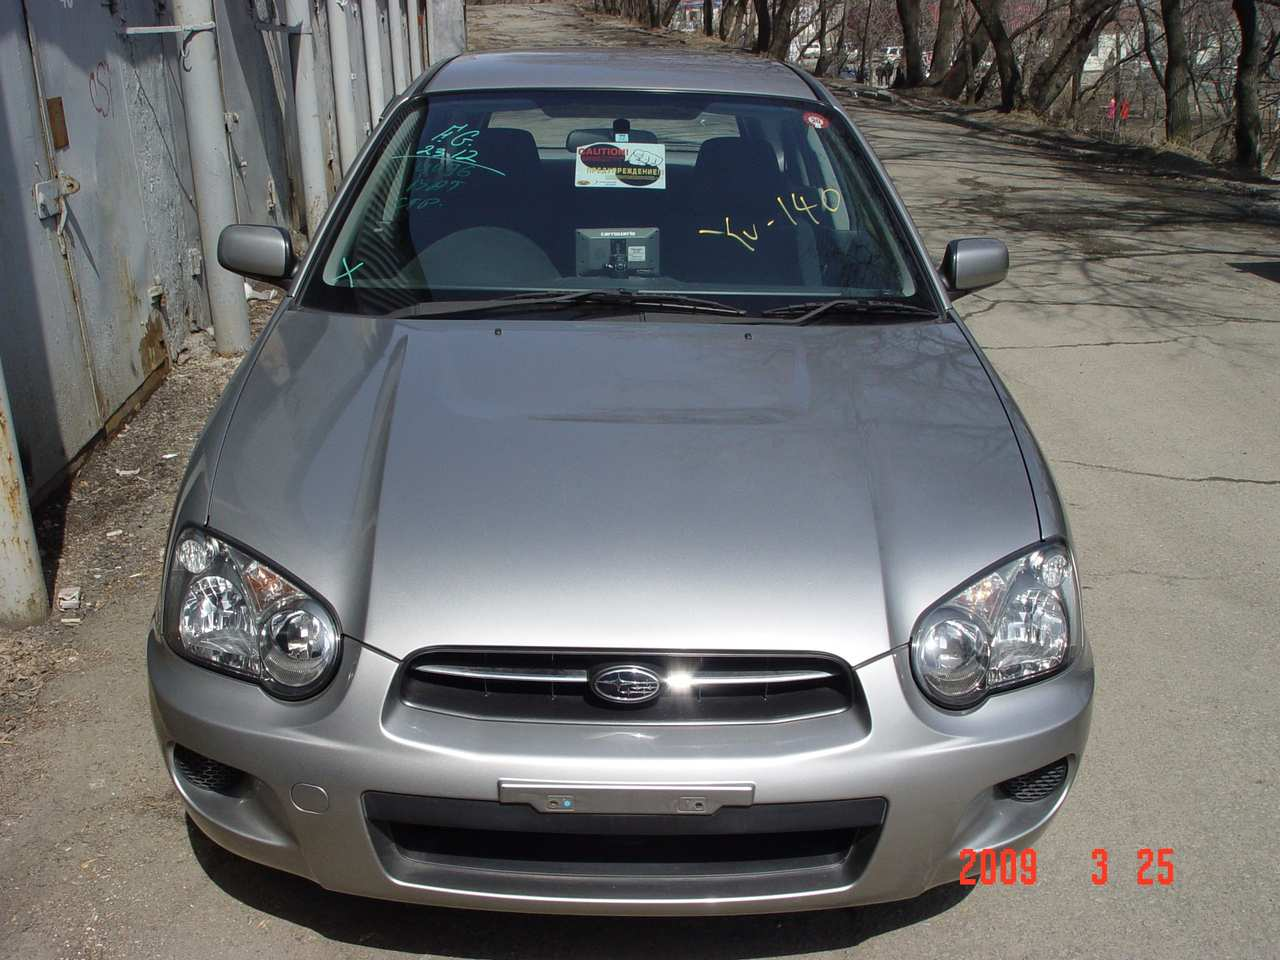 2004 subaru impreza wagon for sale 1500cc gasoline automatic for sale. Black Bedroom Furniture Sets. Home Design Ideas